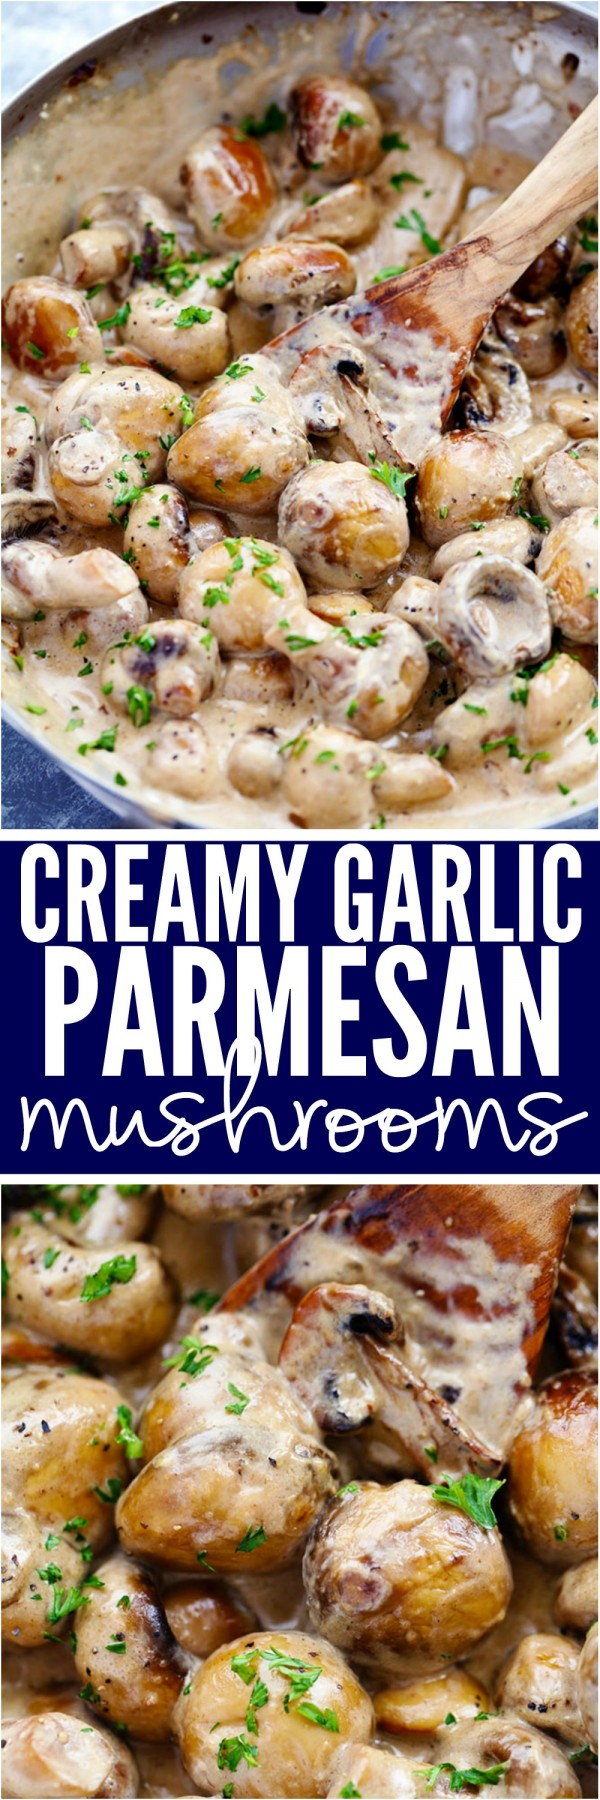 Get the #recipe Creamy Garlic Parmesan #Mushrooms @recipes_to_go